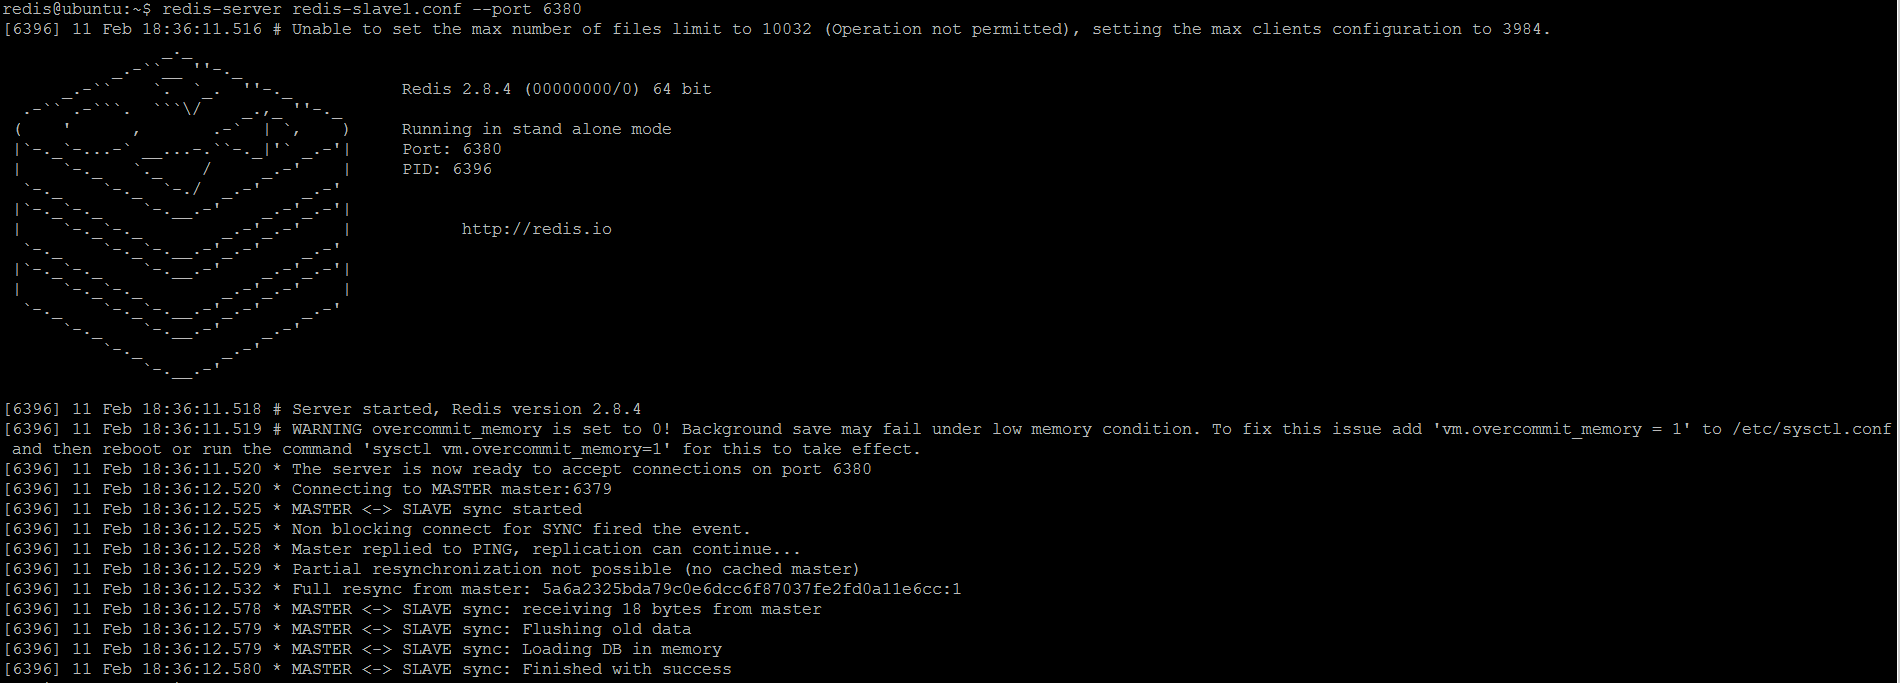 Figure 3. Redis slave (replica) 1 is started (by default in read-only mode) and immediately synchronizes with master